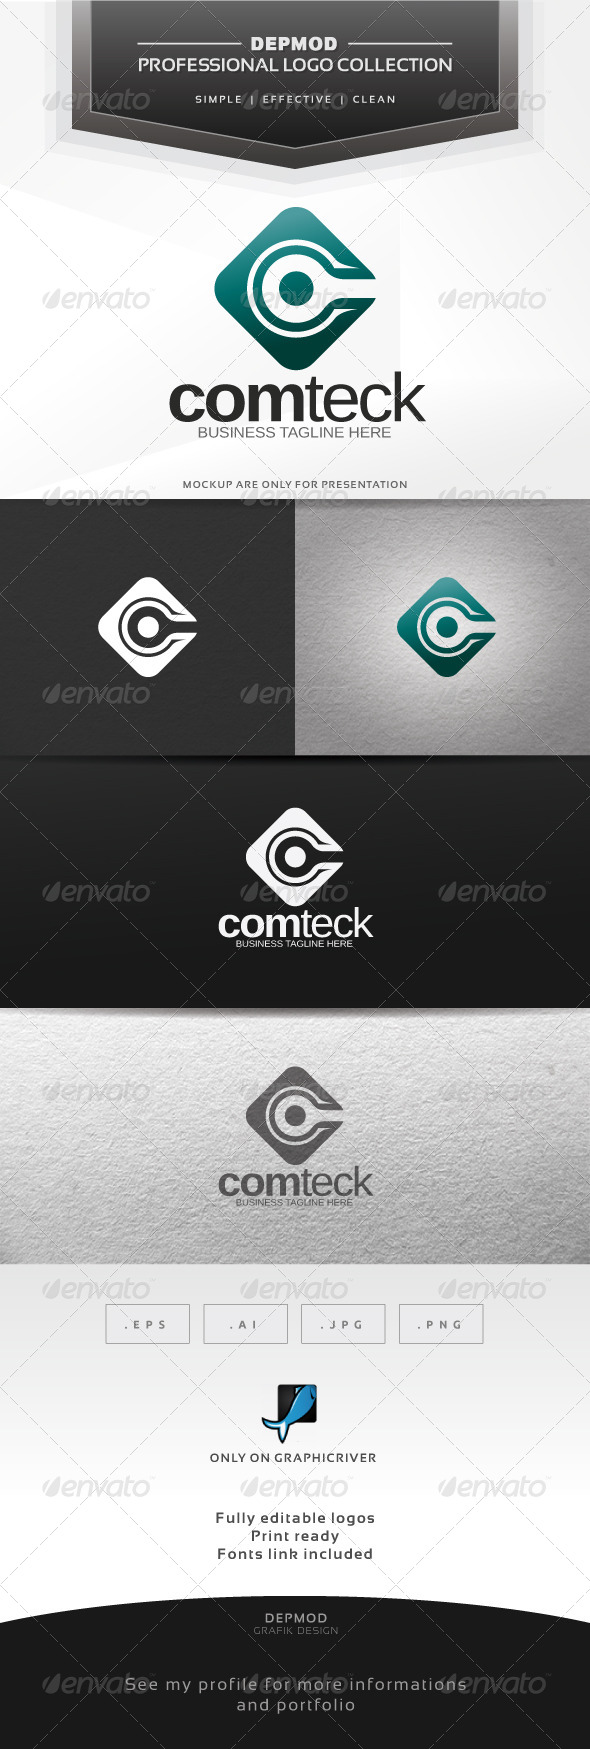 Comteck Logo - Abstract Logo Templates